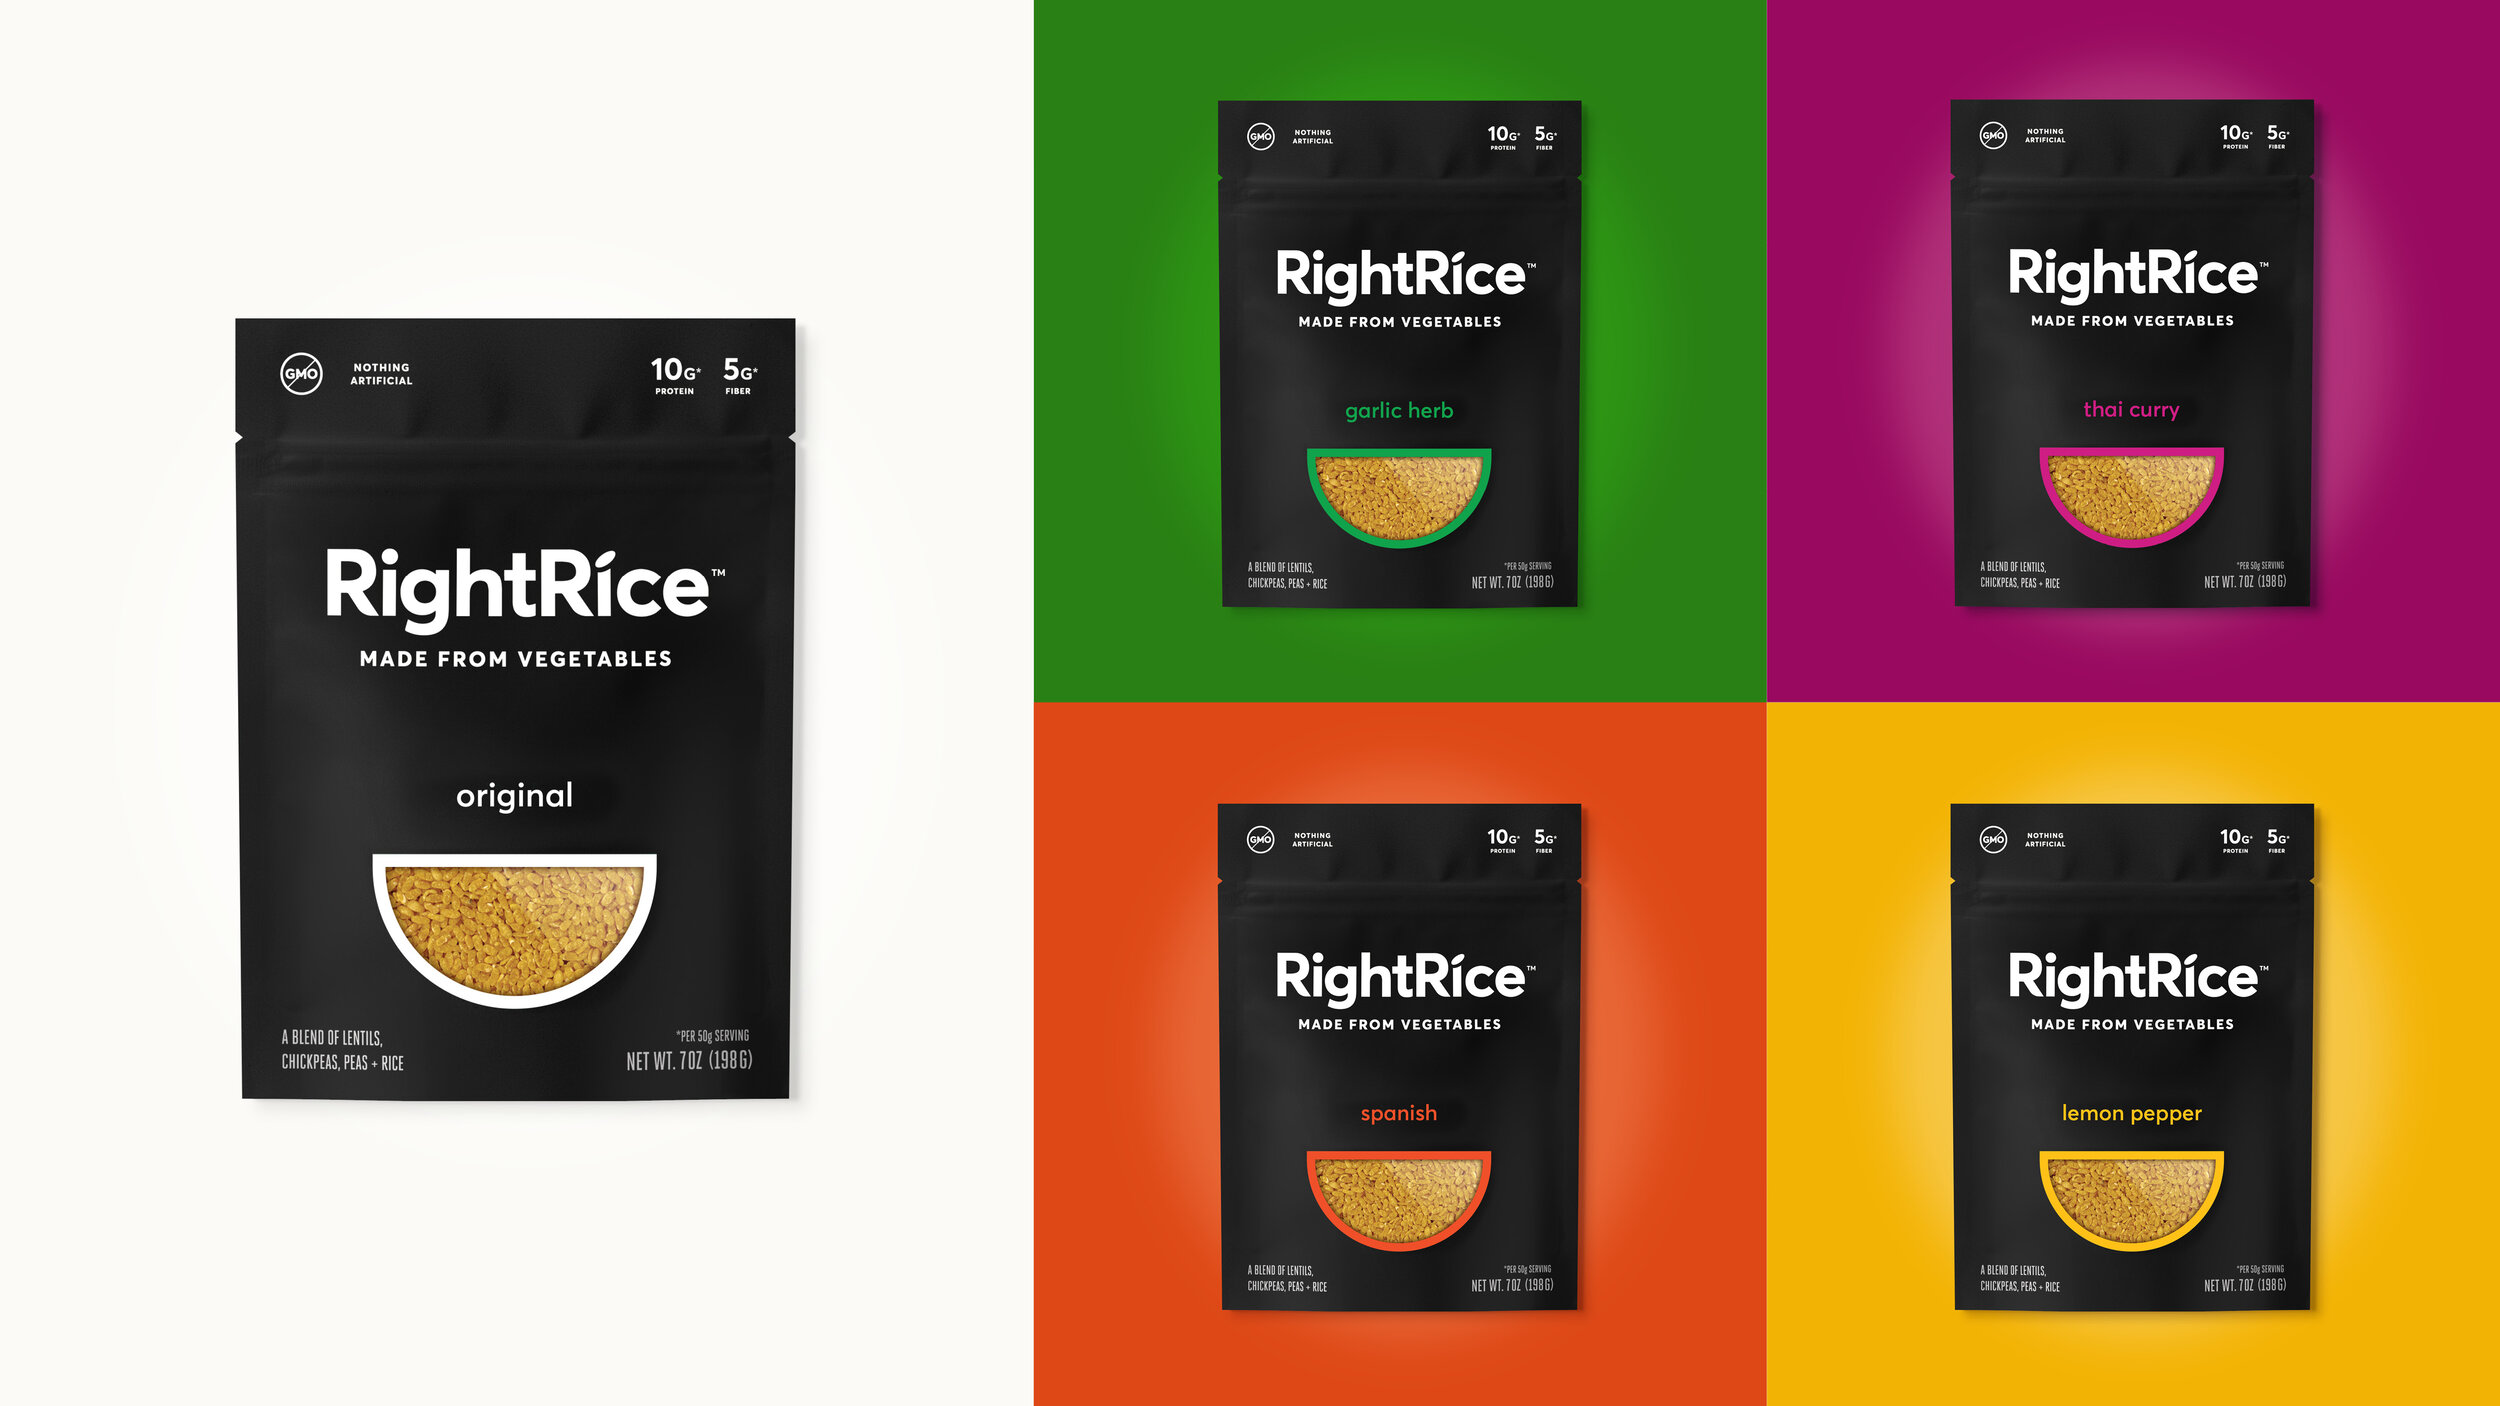 RightRice is available in five of the most popular rice flavors from ingredients you can read. The visual identity makes it easy for consumers to navigate toward their preferred flavor.